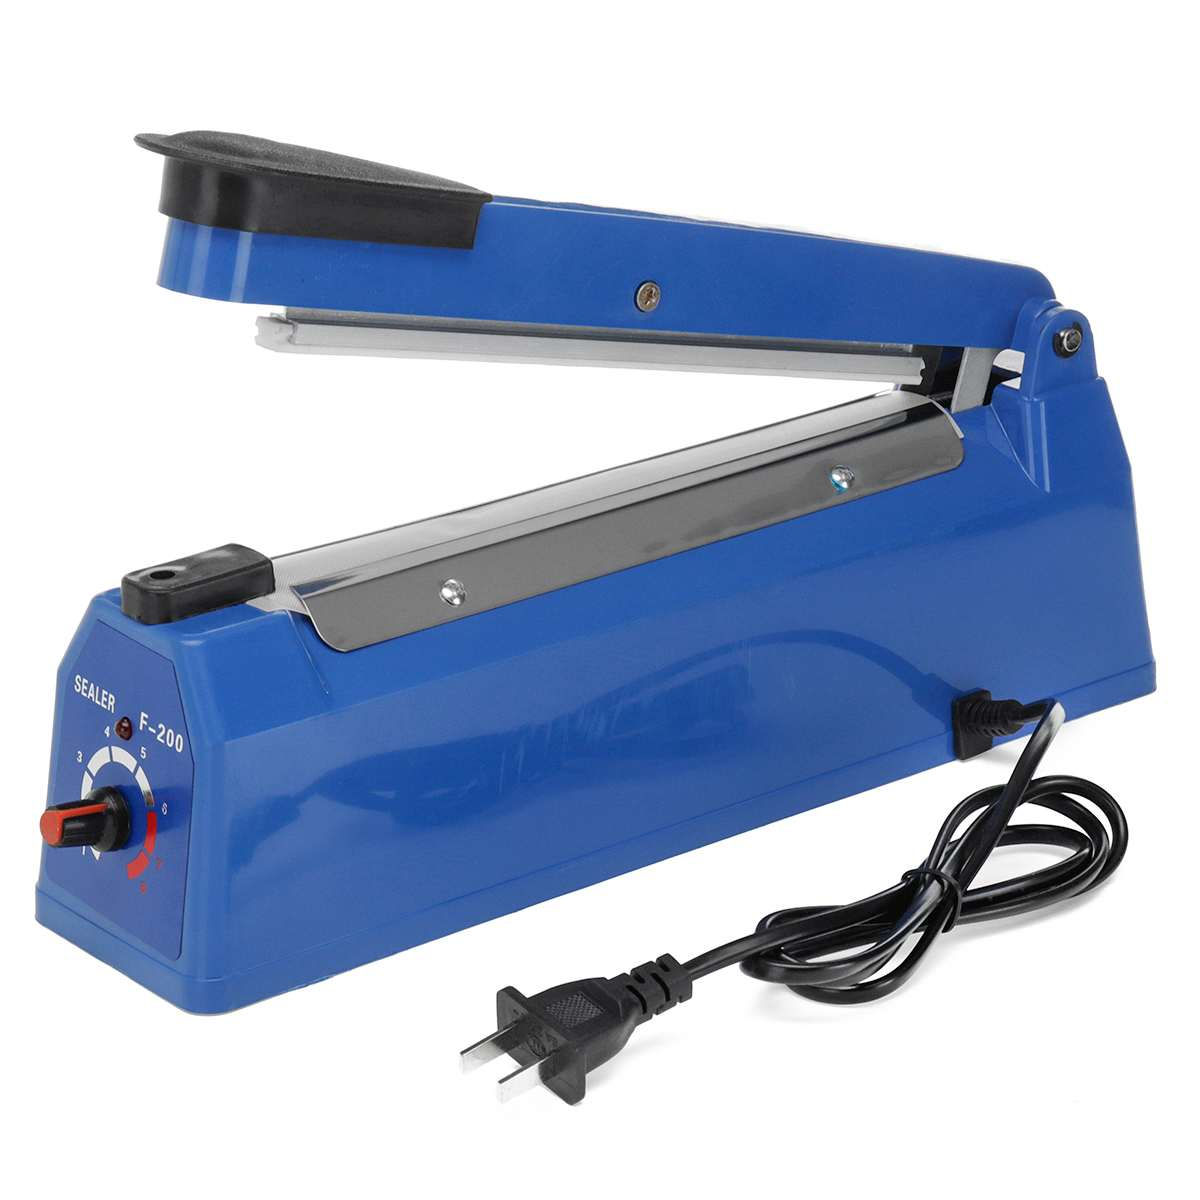 200mm to 300mm High Temperature Resistant Electric Vacuum Food Sealer with Excellent Cooling Base to Keep the Food Fresh